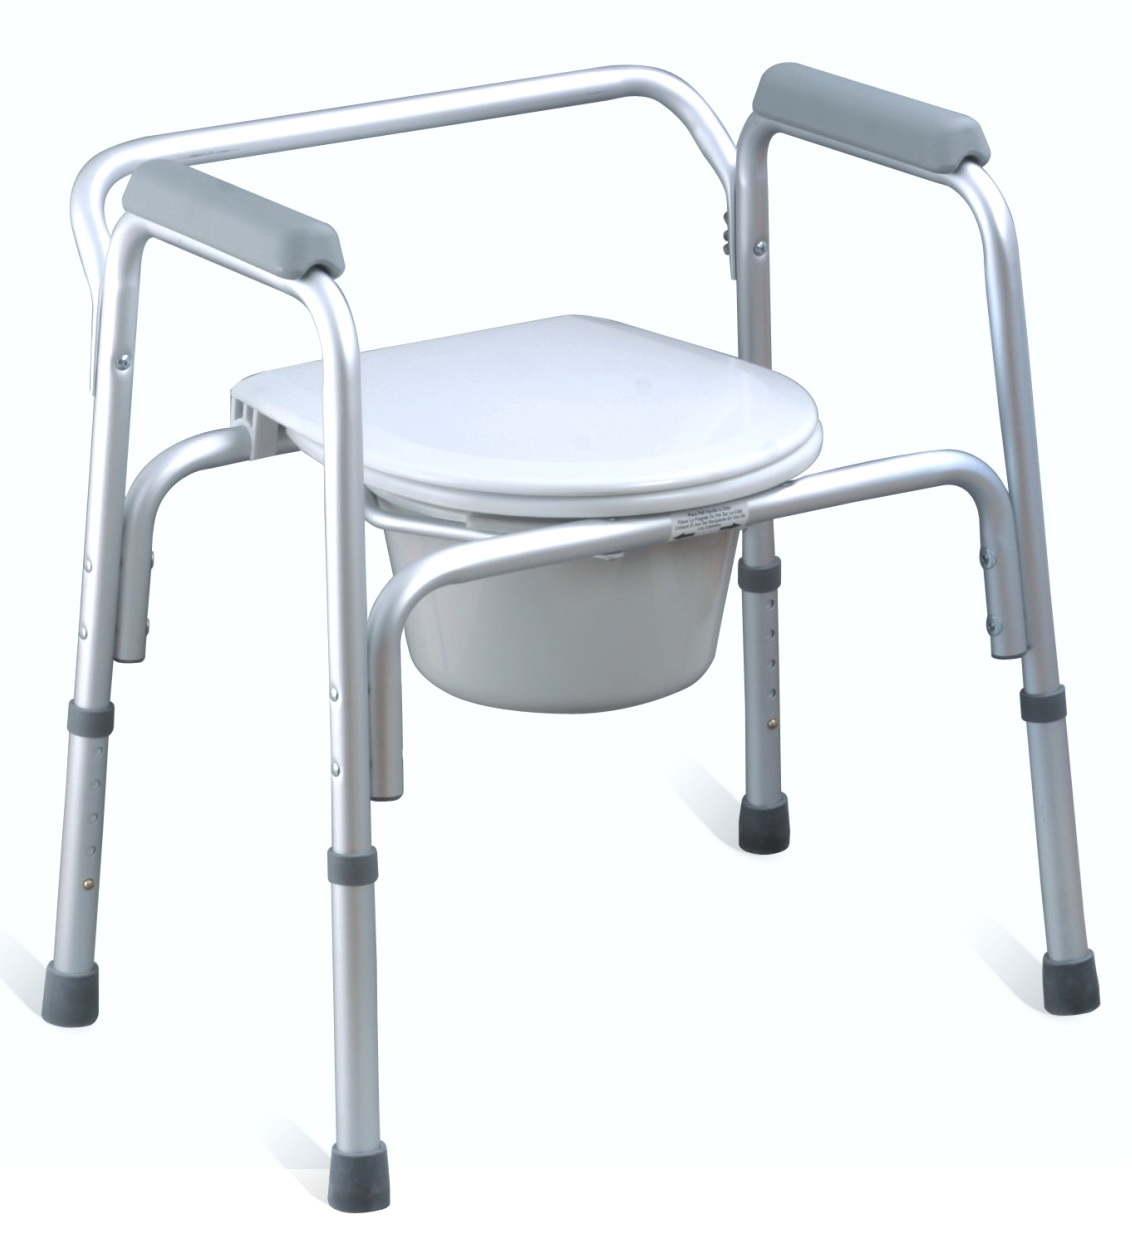 folding drop-arm commode chair,adjustable commode chair,deluxe ...